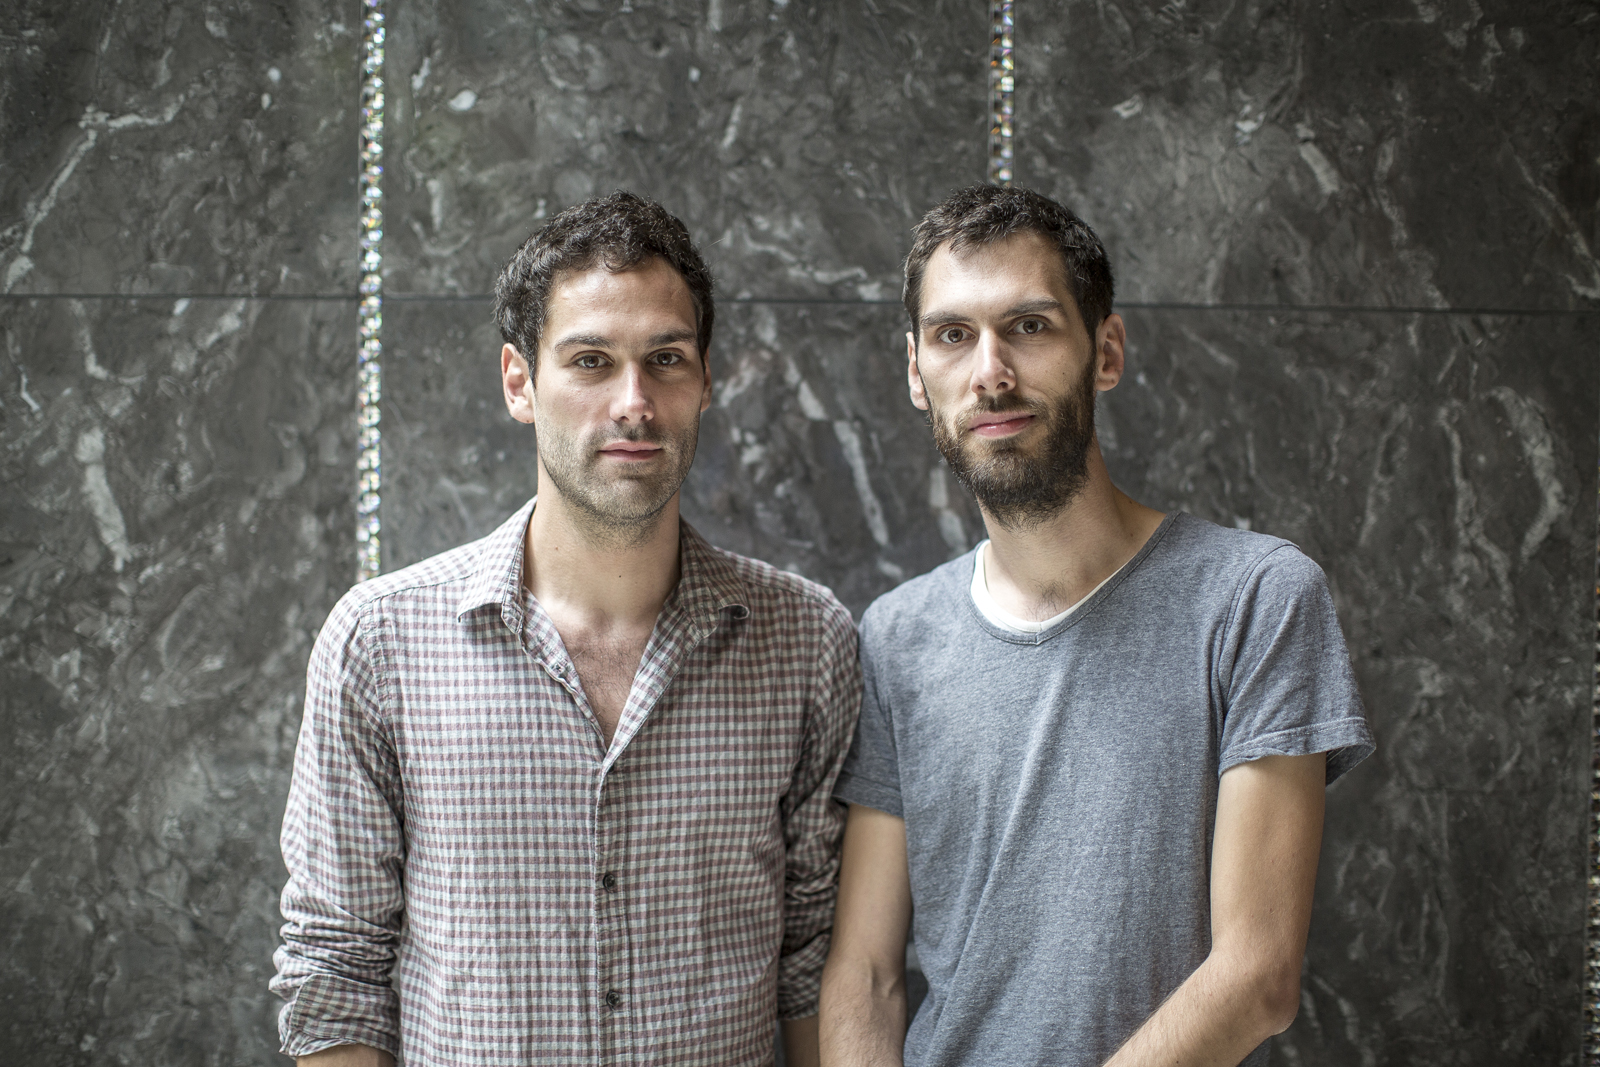 Florent et Romain Bodart lauréats ATA 2015 (musique à l'image) photo by Jean-Brice Lemal